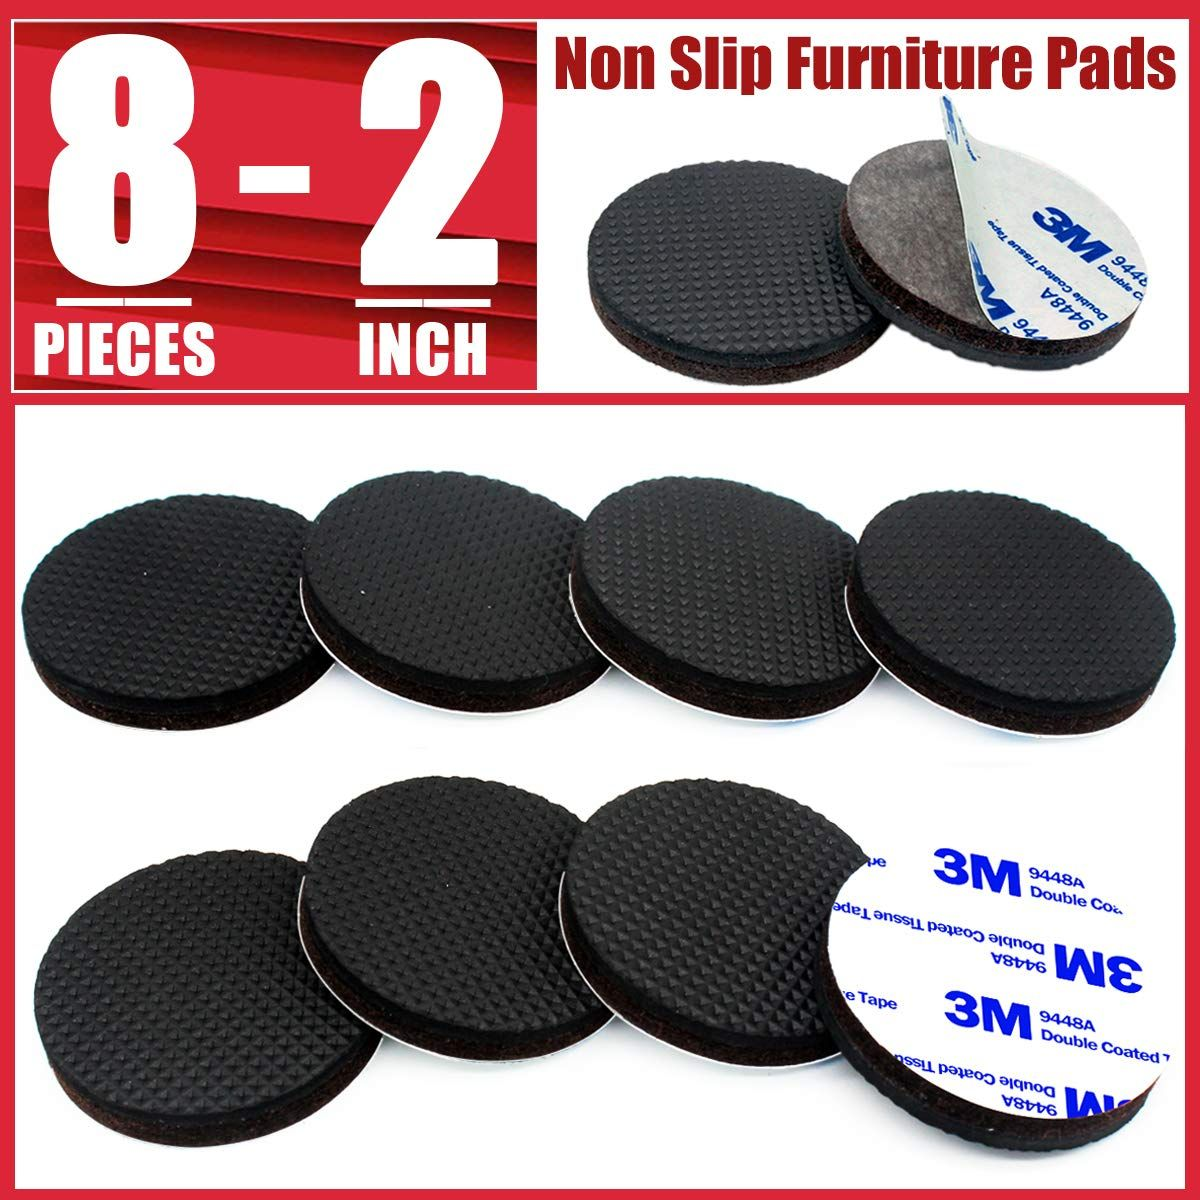 Non Slip Furniture Pads 8 Pcs 2a Furniture Grippers For Hardwood Floors Round Self Adhesive Anti Skid Furniture Pads Rubber Furniture Pads Furniture Grippers